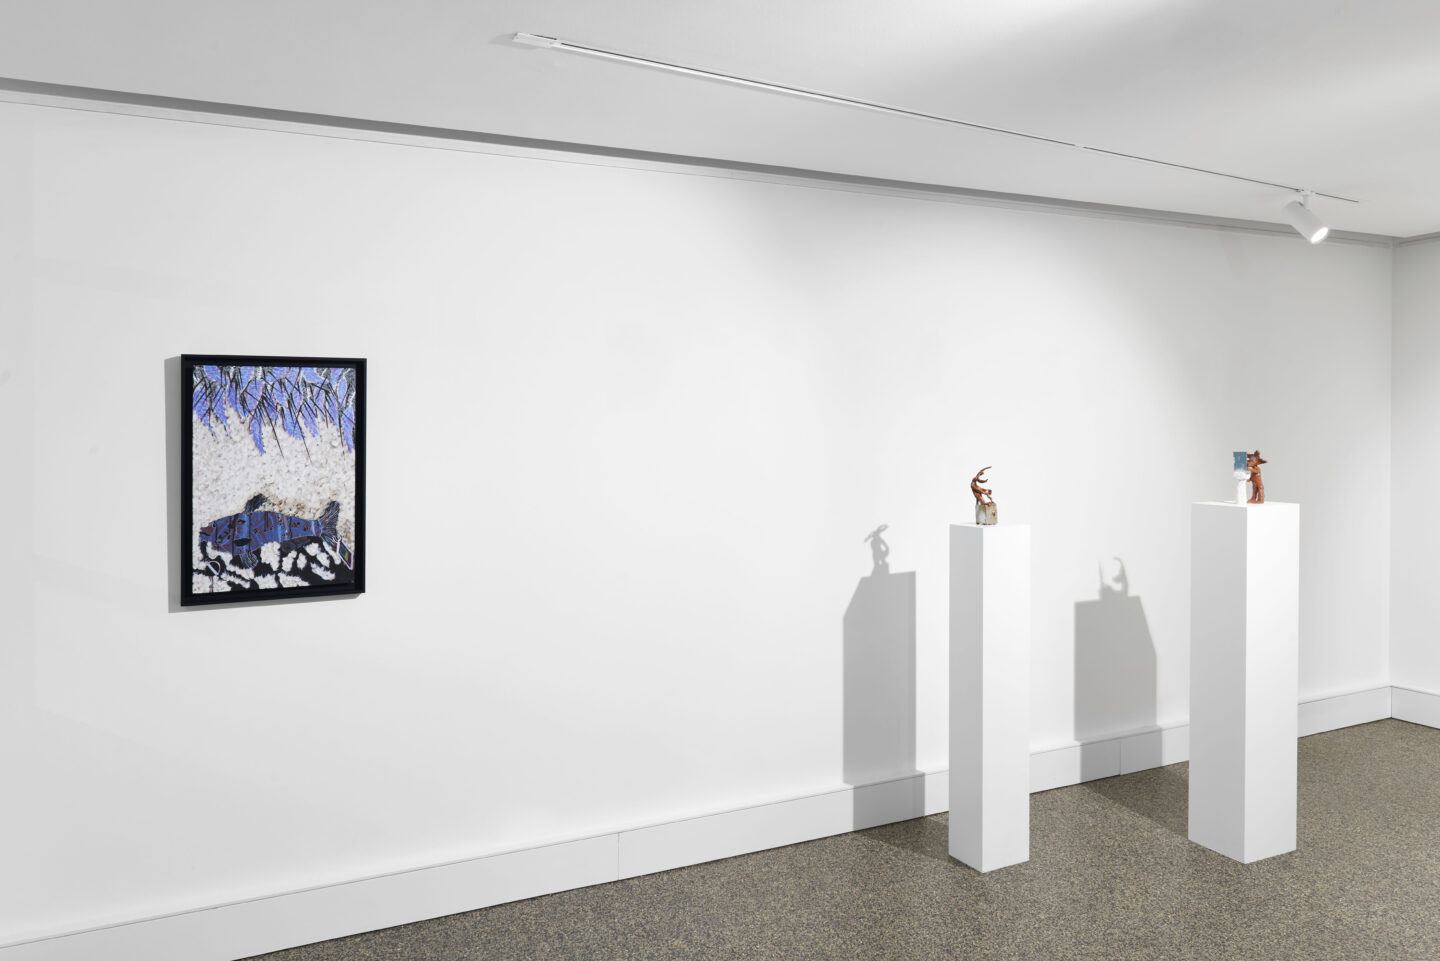 Exhibition View Groupshow «Supper Club; view on Omar Ba, Sans titre, 2014; Cassidy Toner, Wile E. Coyote desperately tries to open the vault to his inner happiness, 2019 and Cassidy Toner, Wile E. Coyote contemplates his existence, 2018» at Wilde, Basel, 2020 / Photo: Philipp Hänger / Courtesy: the artists and Wilde